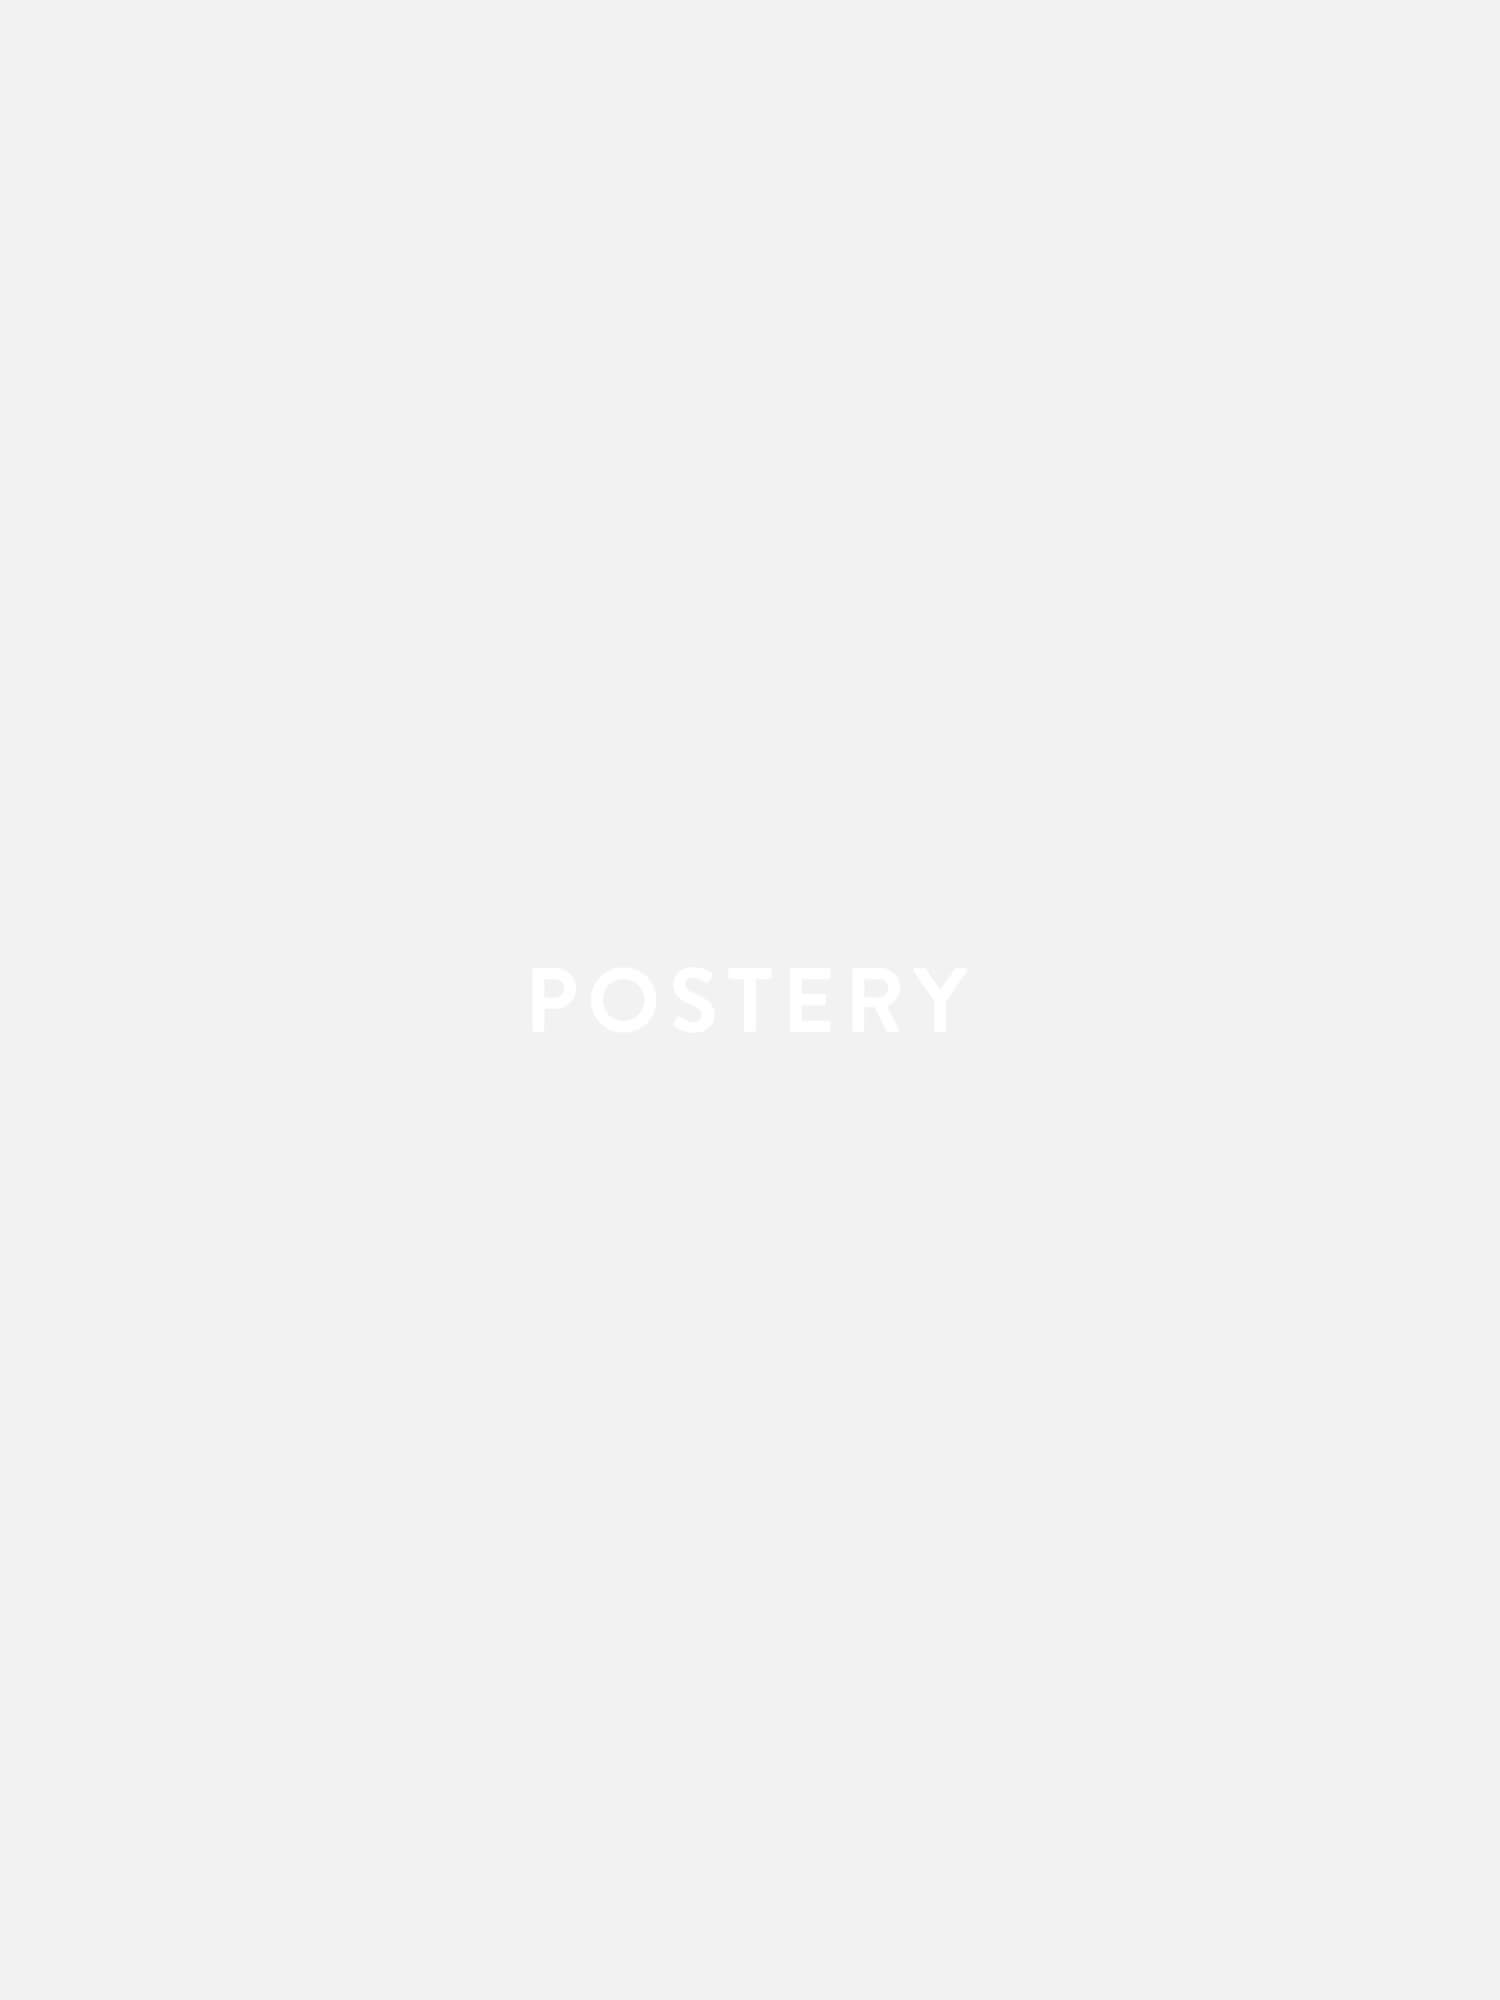 My Own Superhero Poster